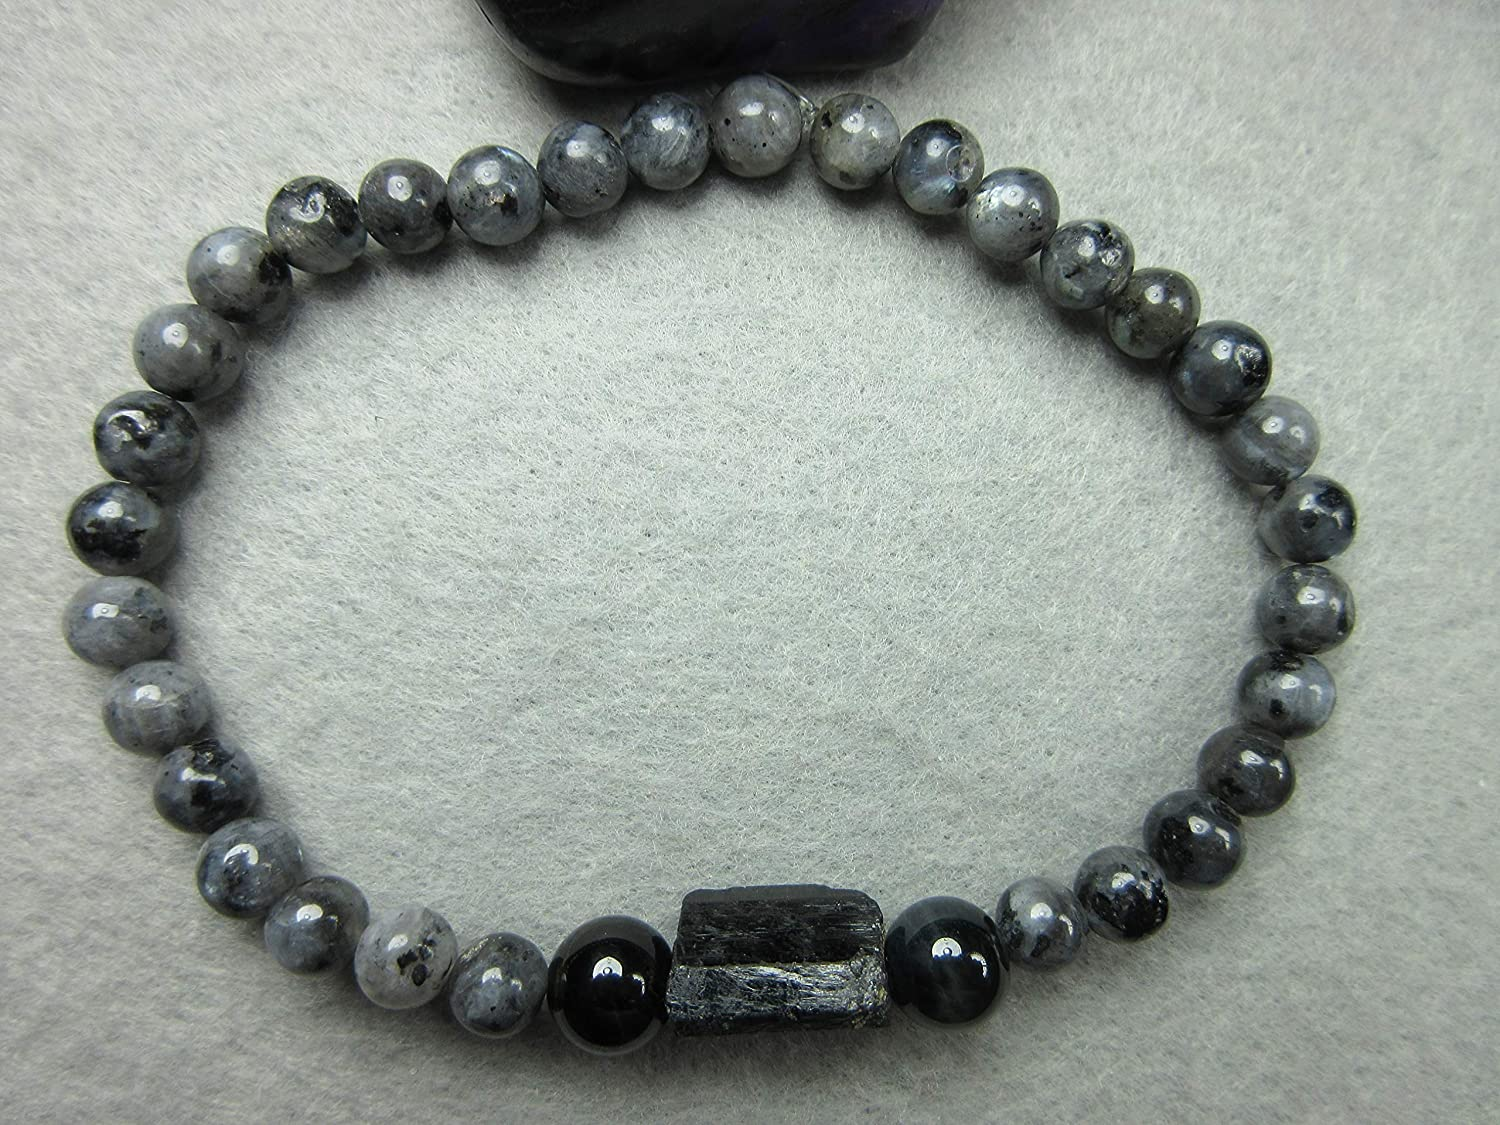 Genuine Larvikite, Blue Tigers Eye and Black Tourmaline Healing Bracelet Protection Lucid Dreaming